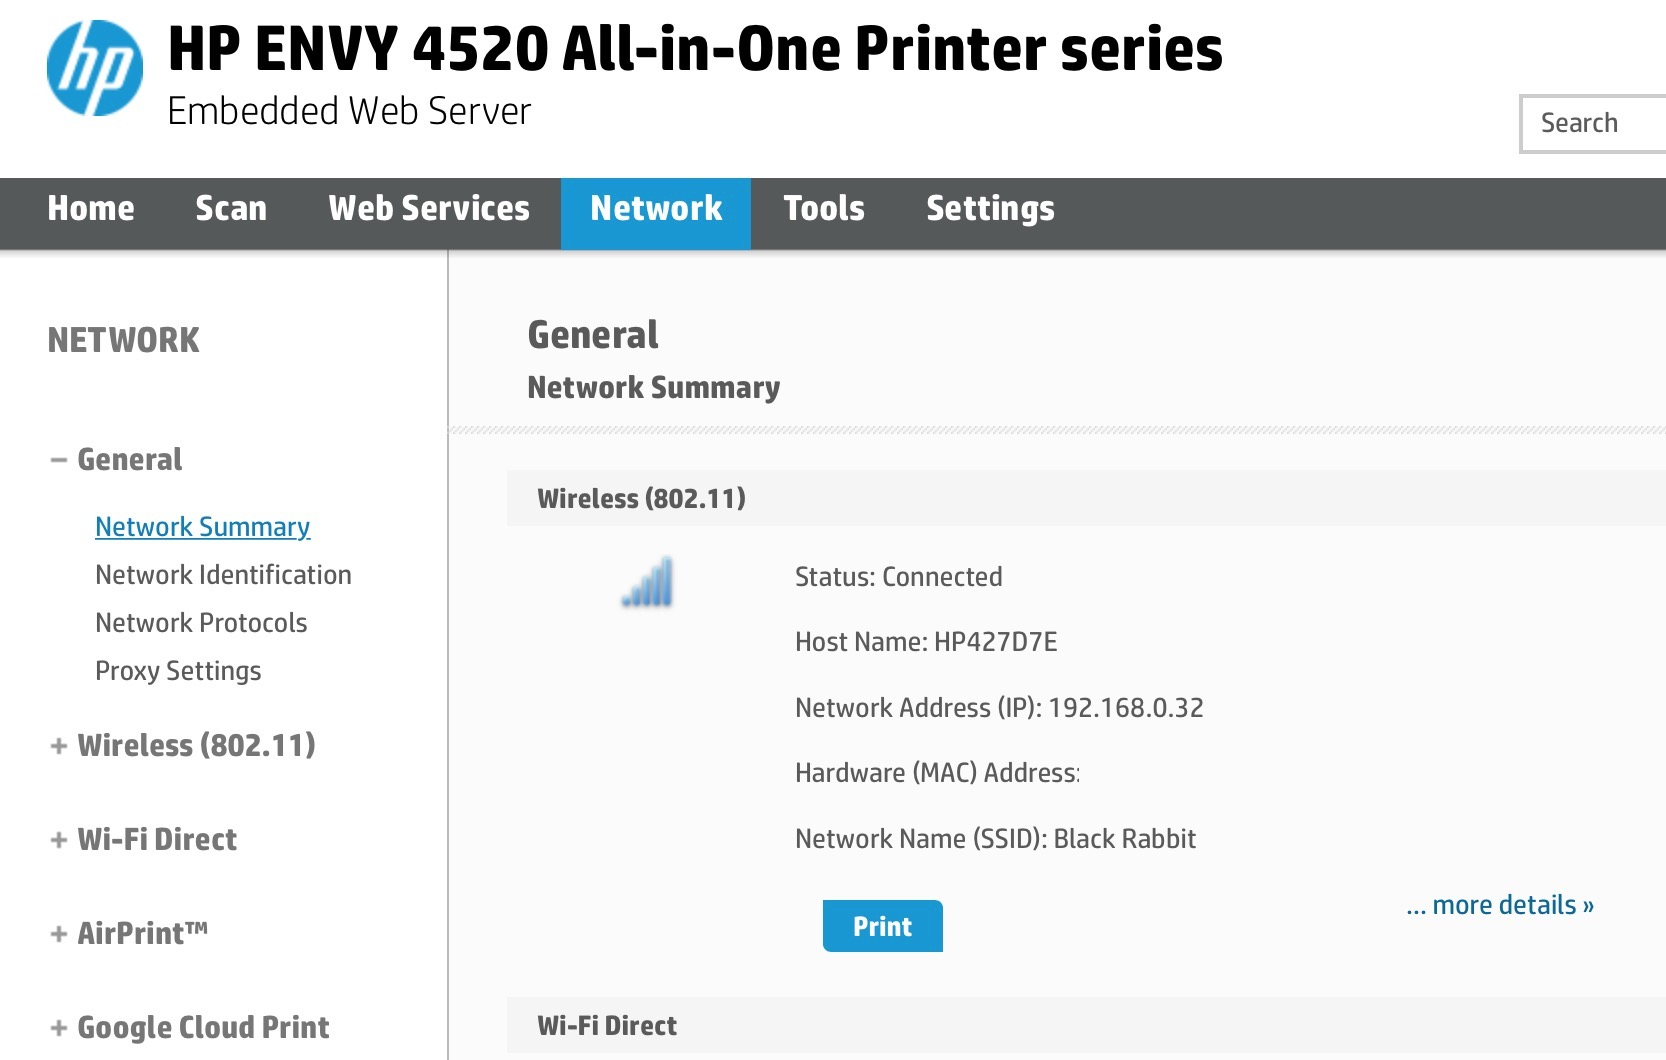 Here's an example of a built-in Printer Webpage